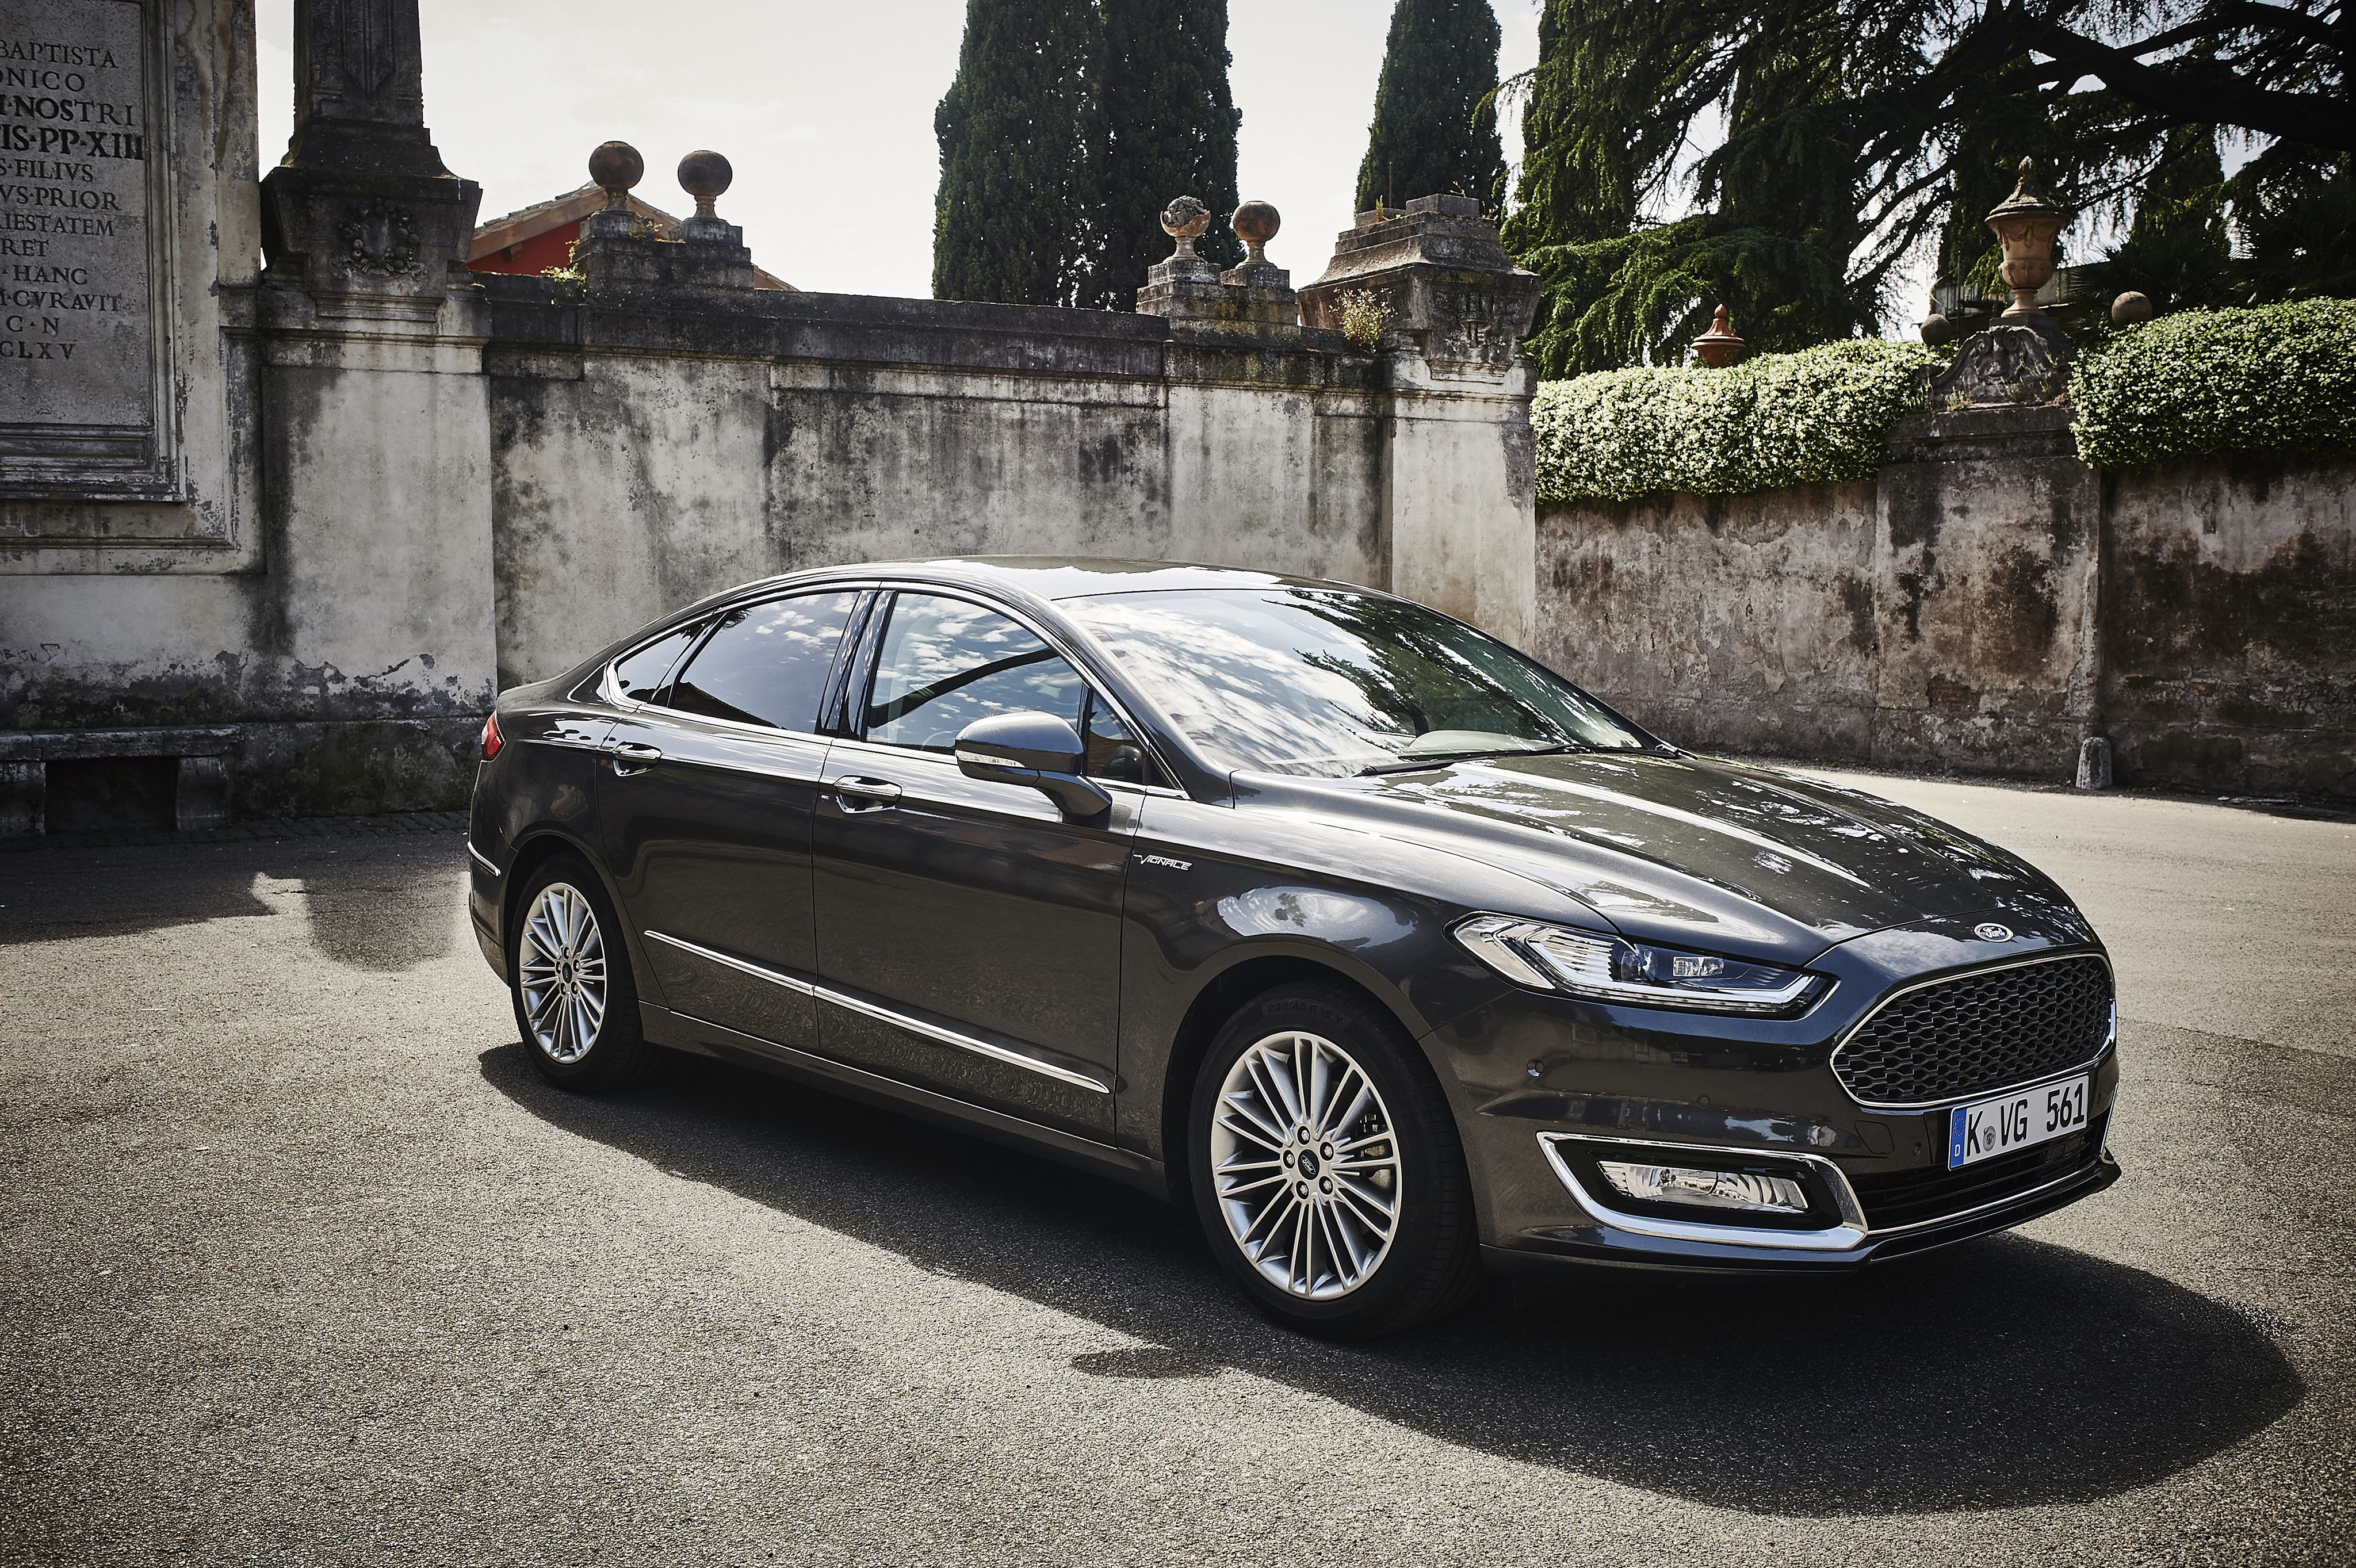 2016 ford mondeo vignale ford ford ford mondeo cars. Black Bedroom Furniture Sets. Home Design Ideas